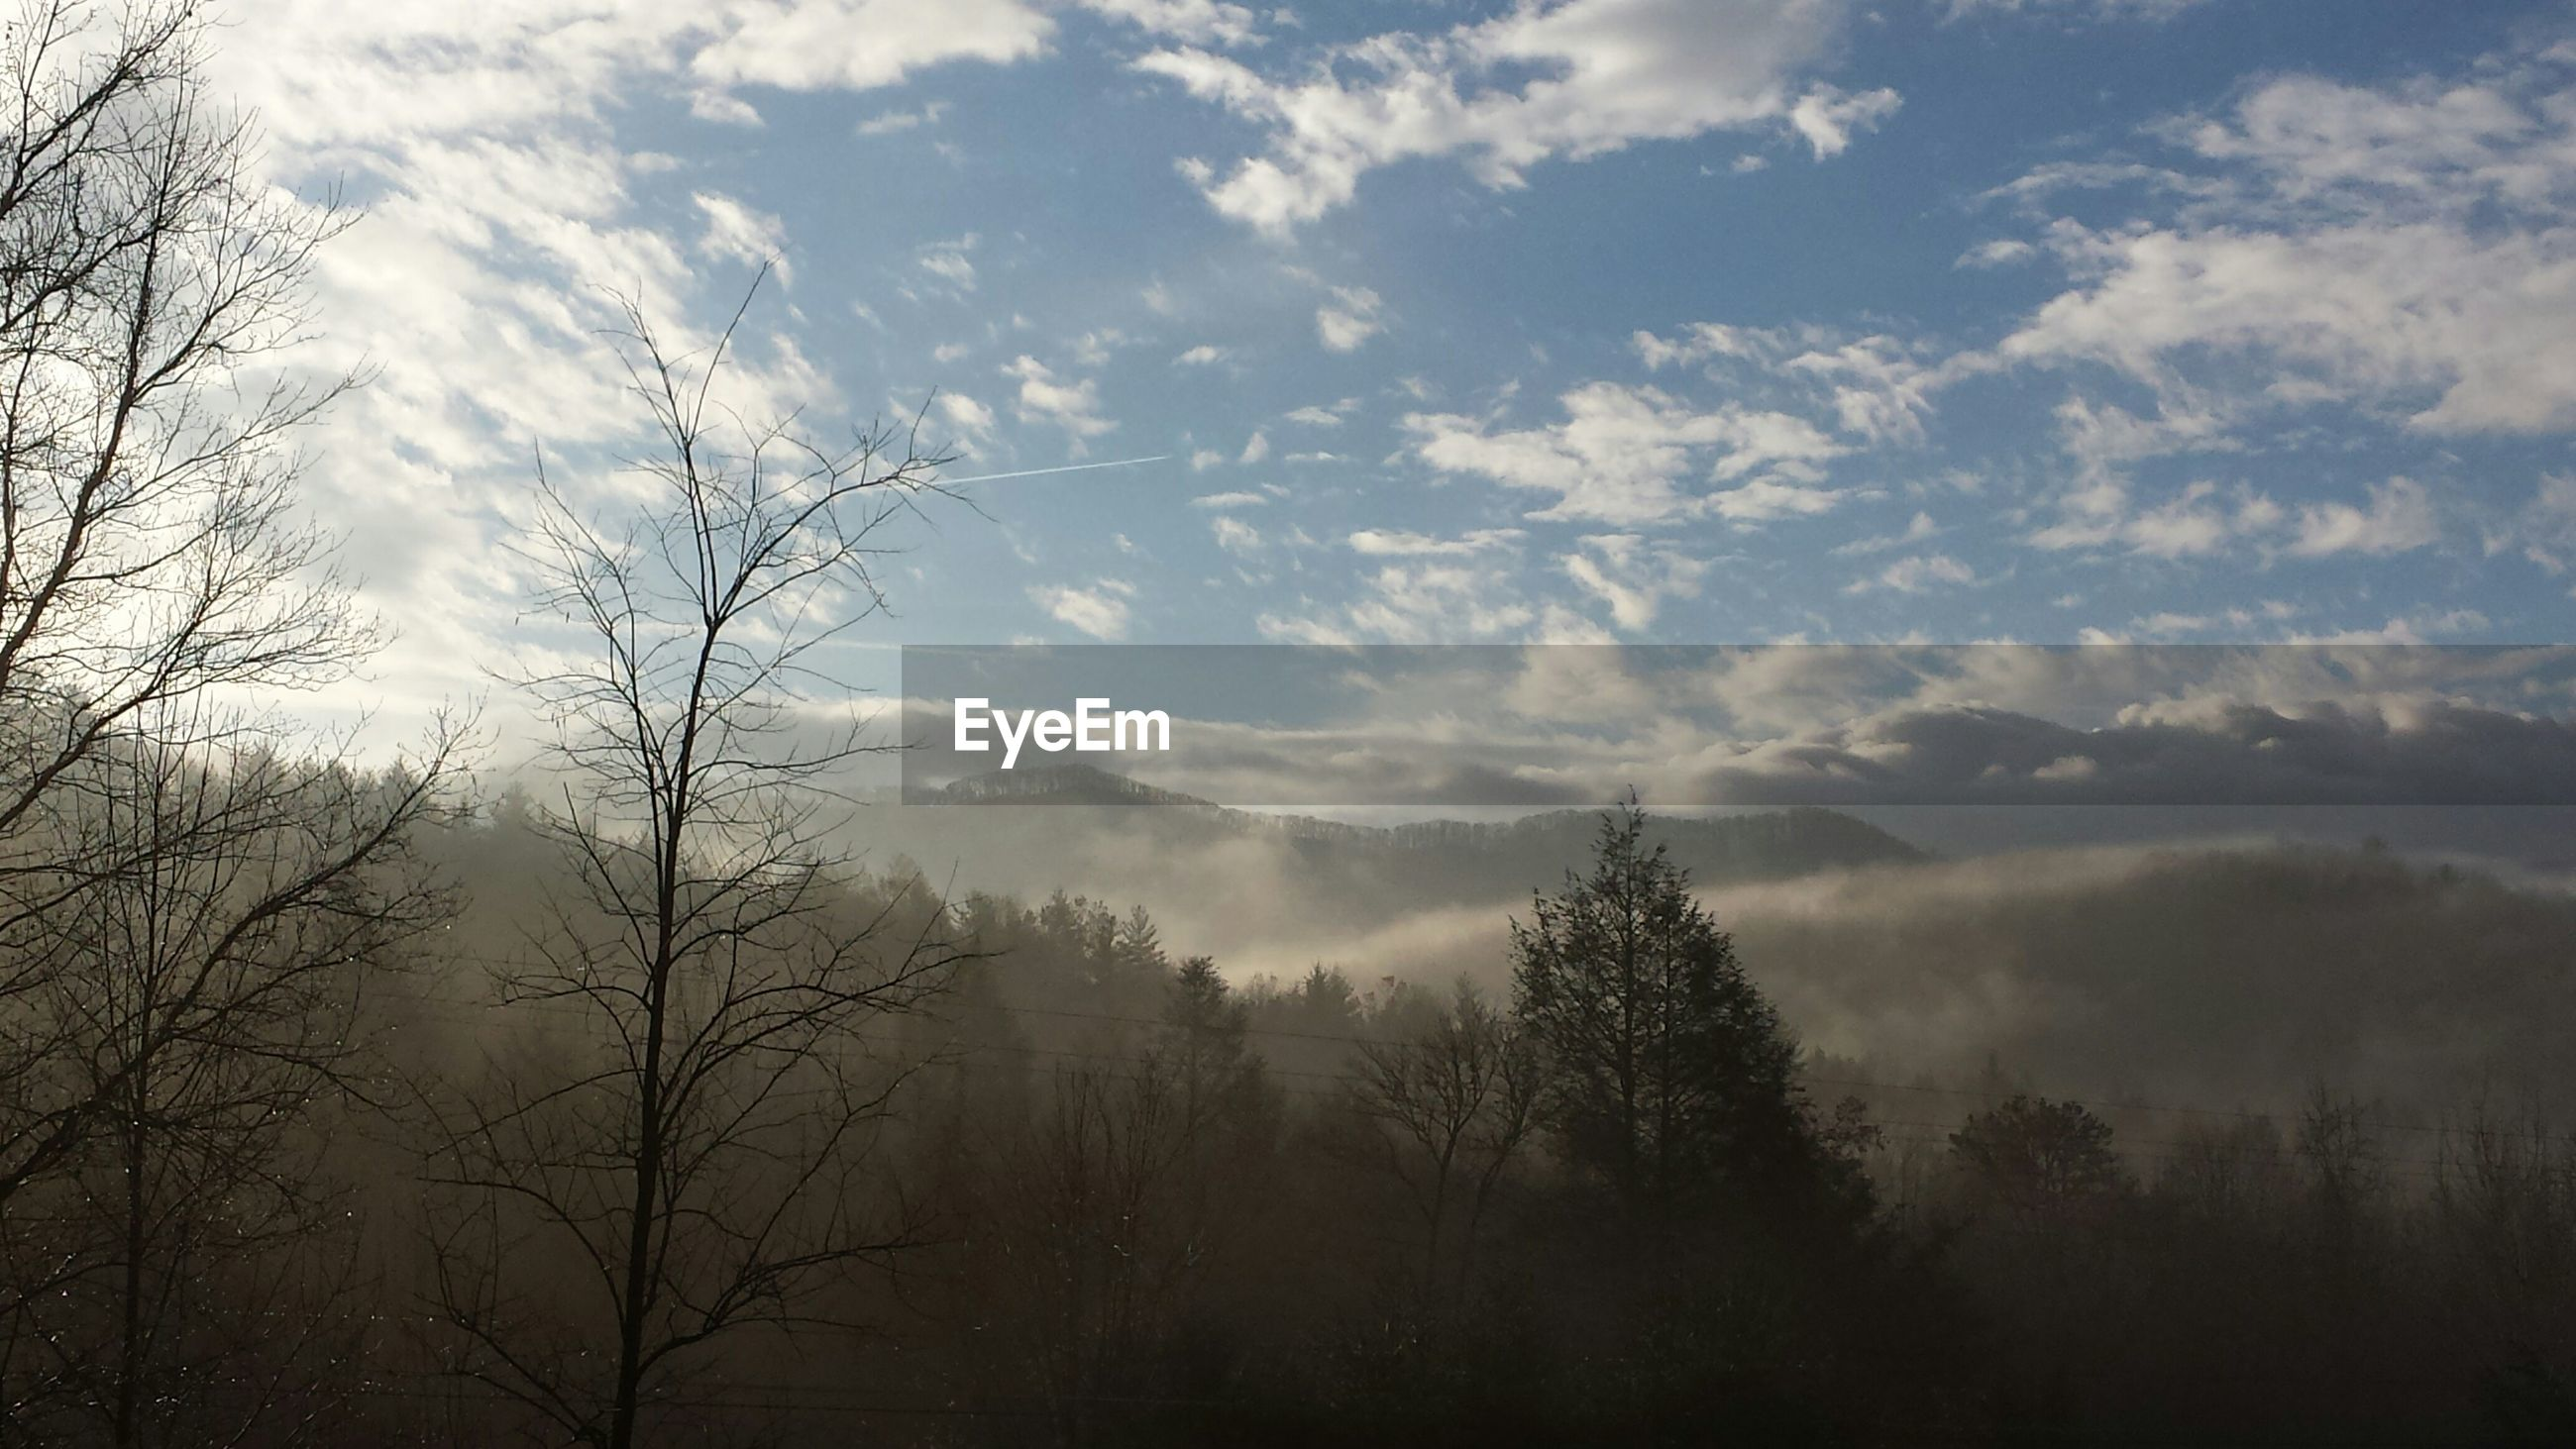 Trees against mountains in foggy weather